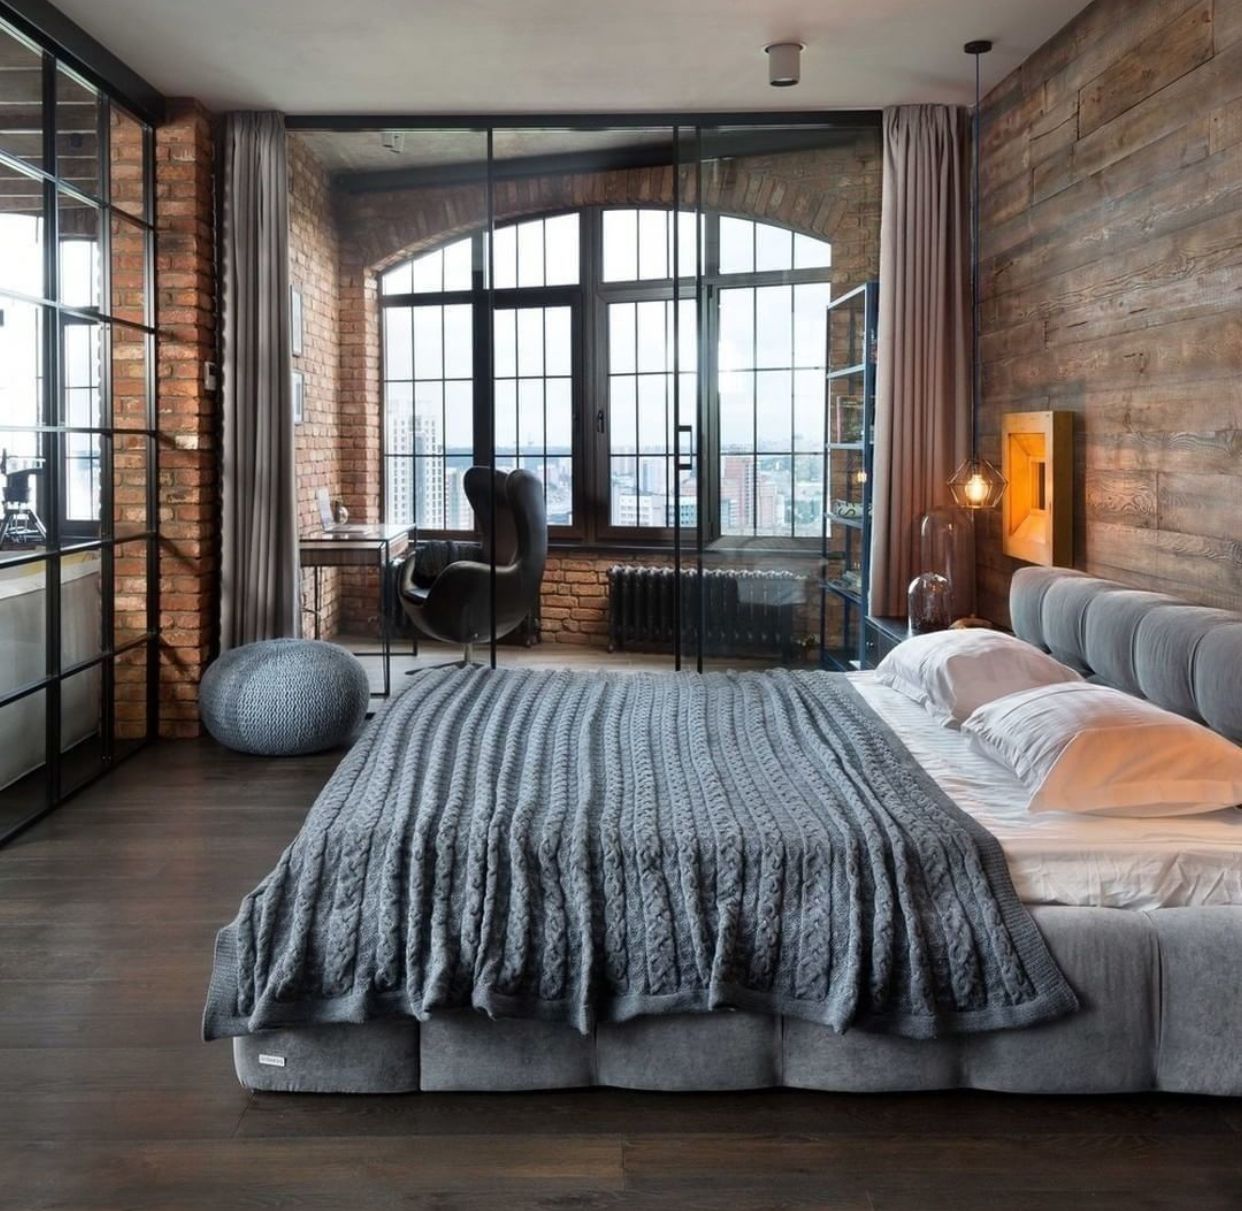 Exposed brick bedroom with private glasses in